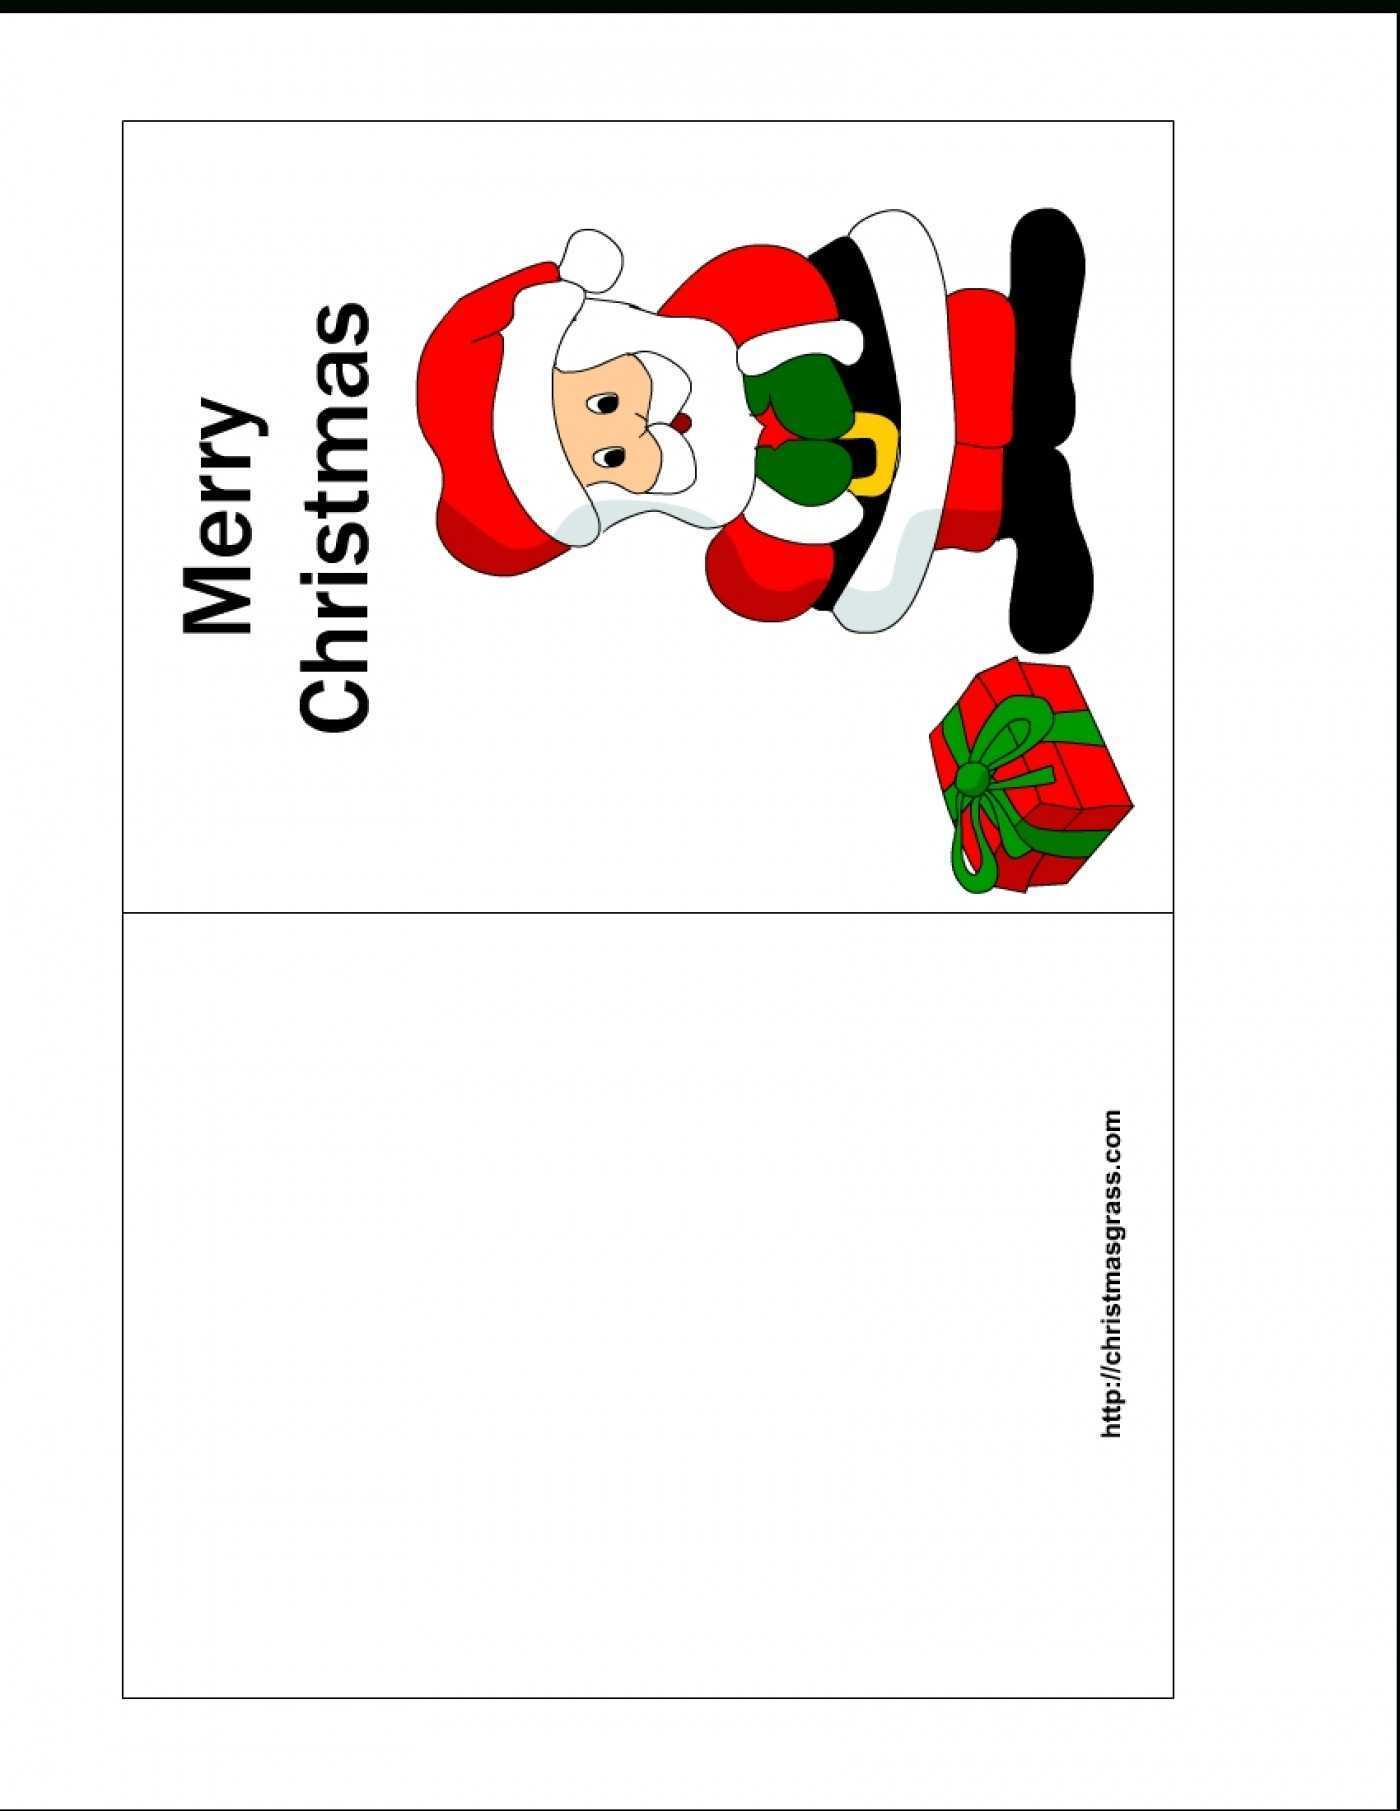 96 Adding Christmas Card Templates Open Office Maker by Christmas Card Templates Open Office